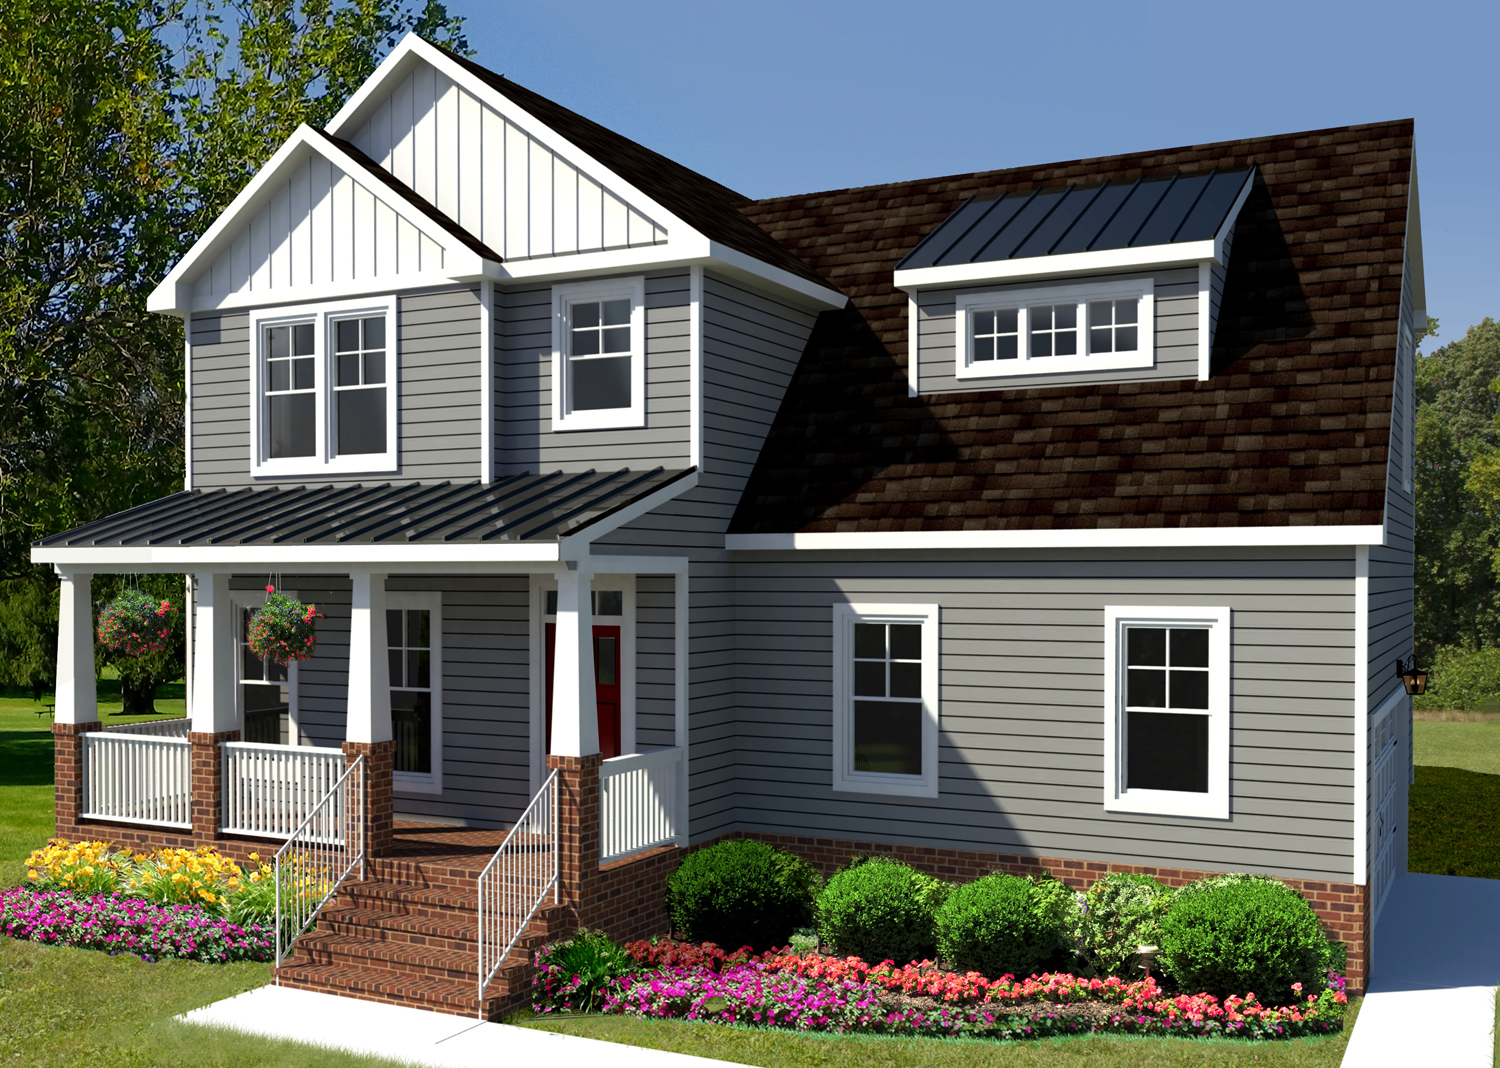 The Carter floor plan model by AB Homes with gray siding and white trim